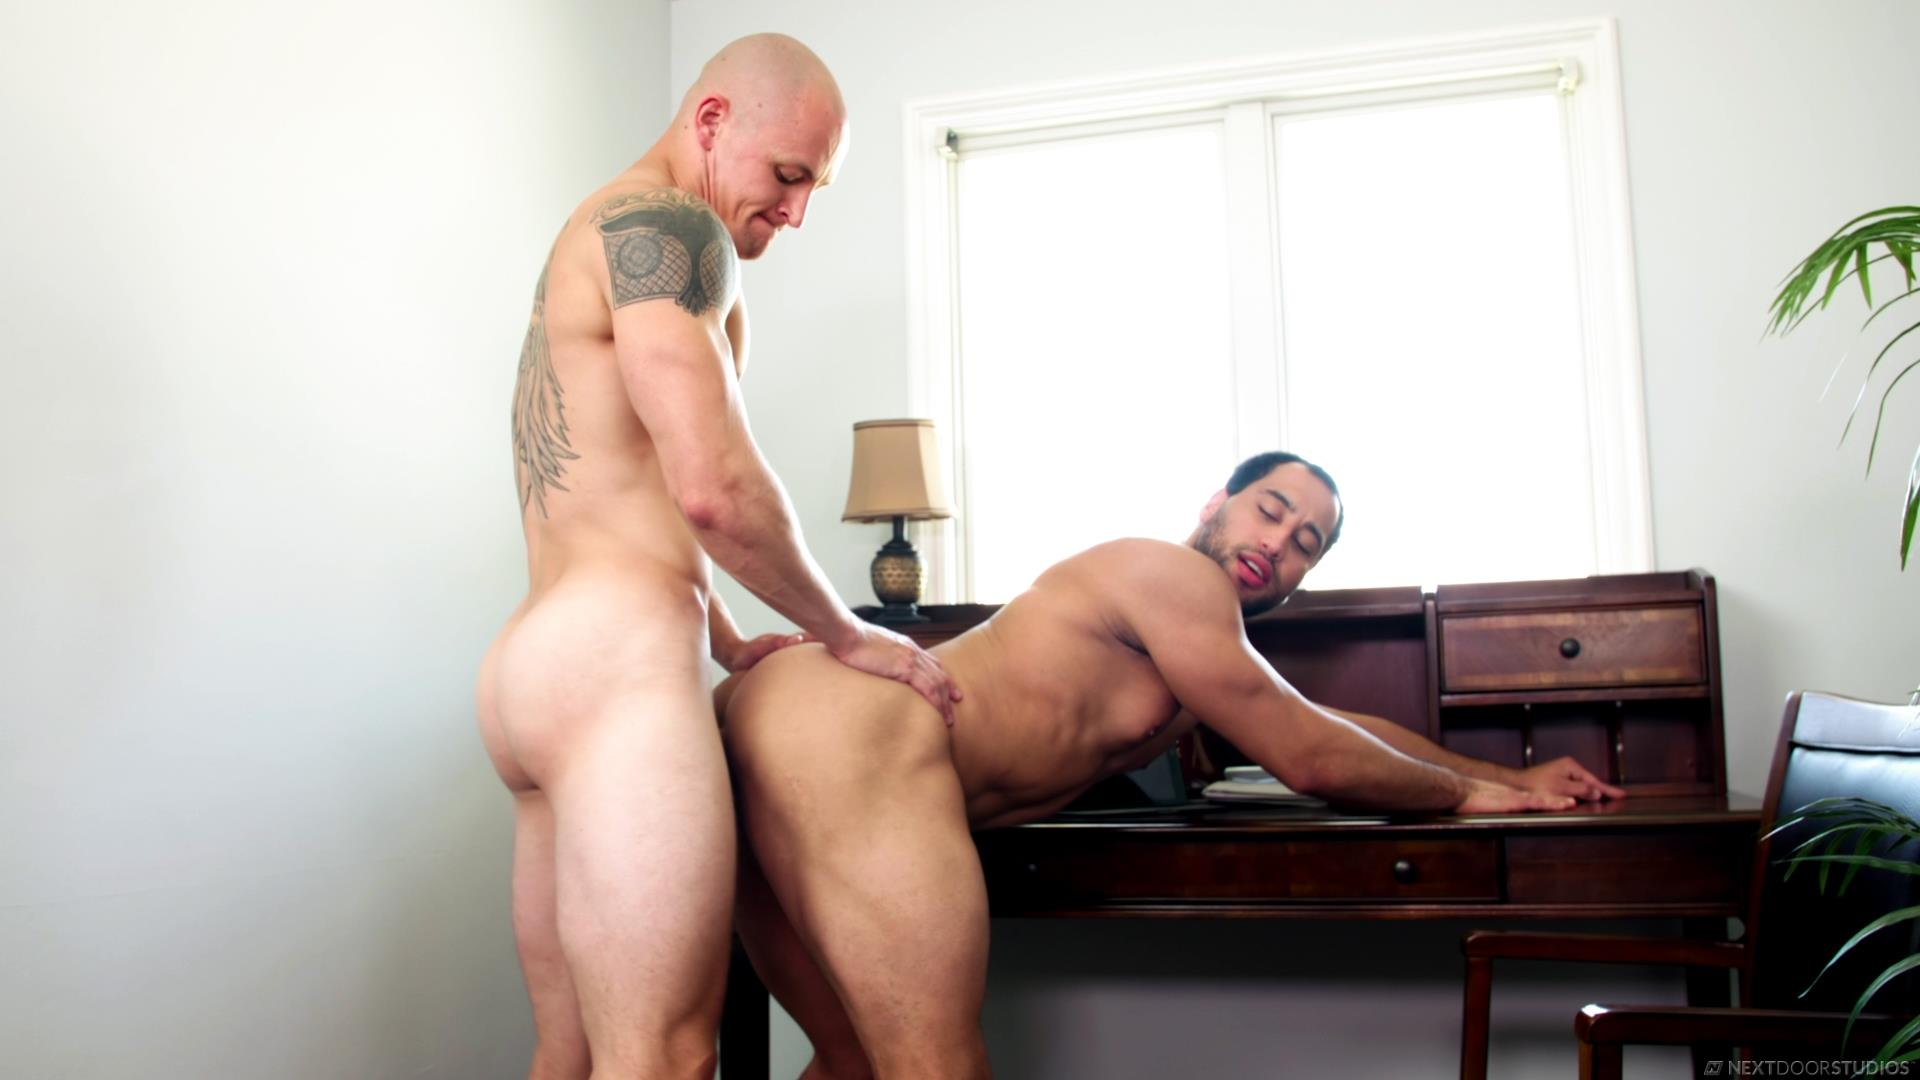 Next-Door-Buddies-Trevor-Laster-and-David-Rose-Bareback-Muscle-Flip-Fuck-Video-09 Bareback Flip Muscle Fuck With Trevor Laster and David Rose